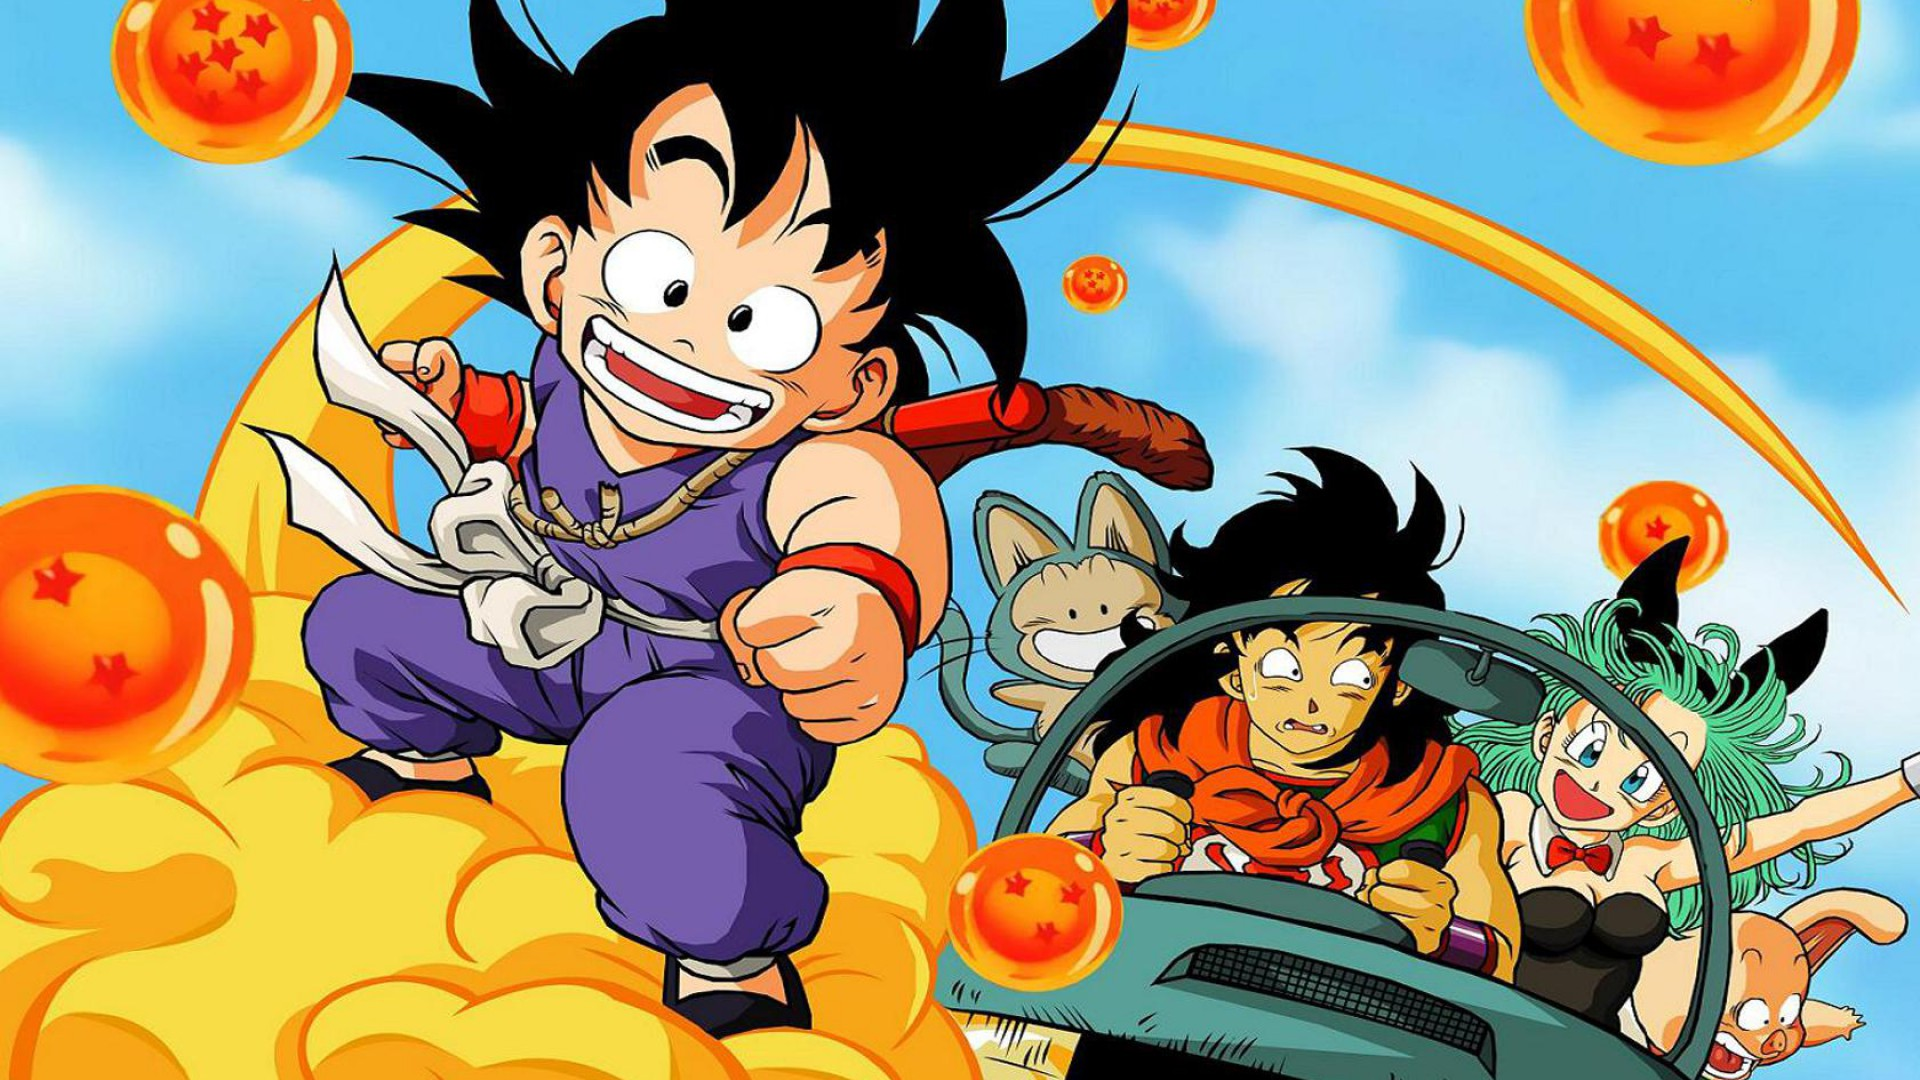 Dragon Ball Z Wallpapers 34088 1920x1080 px HDWallSourcecom